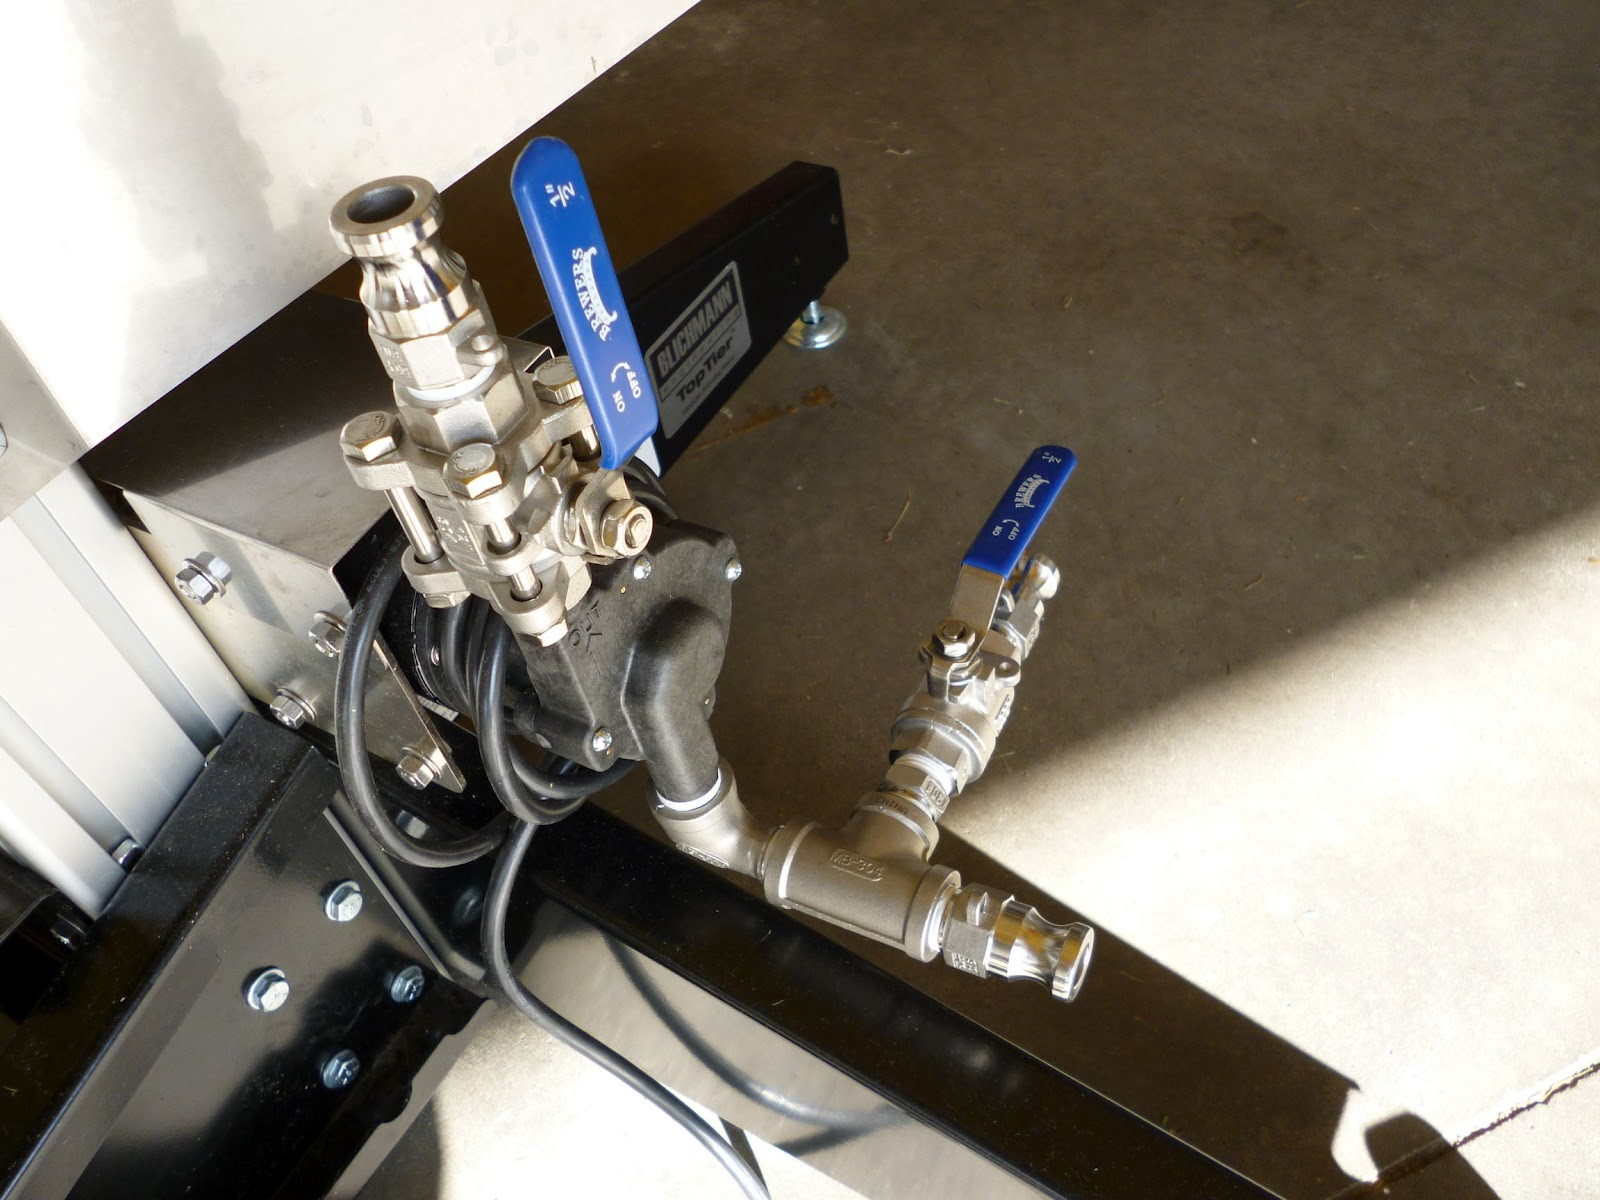 Install a Priming and Purging Port for Easy Pump Operation